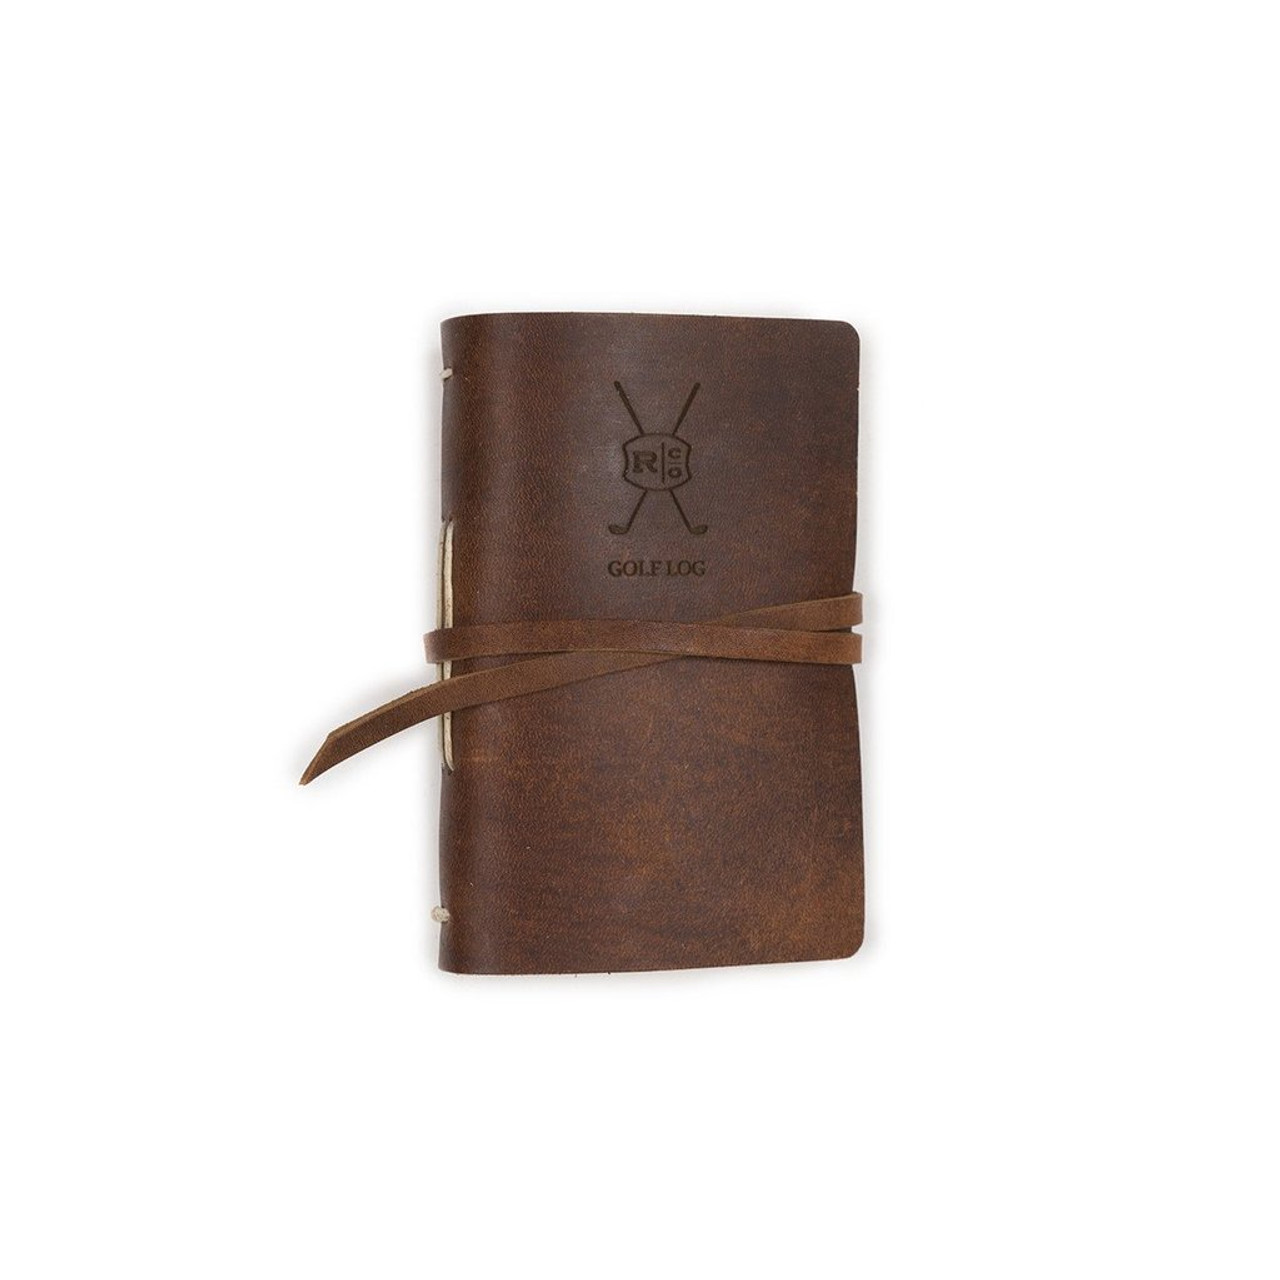 Leather Golf Log with Printed Paper - Saddle